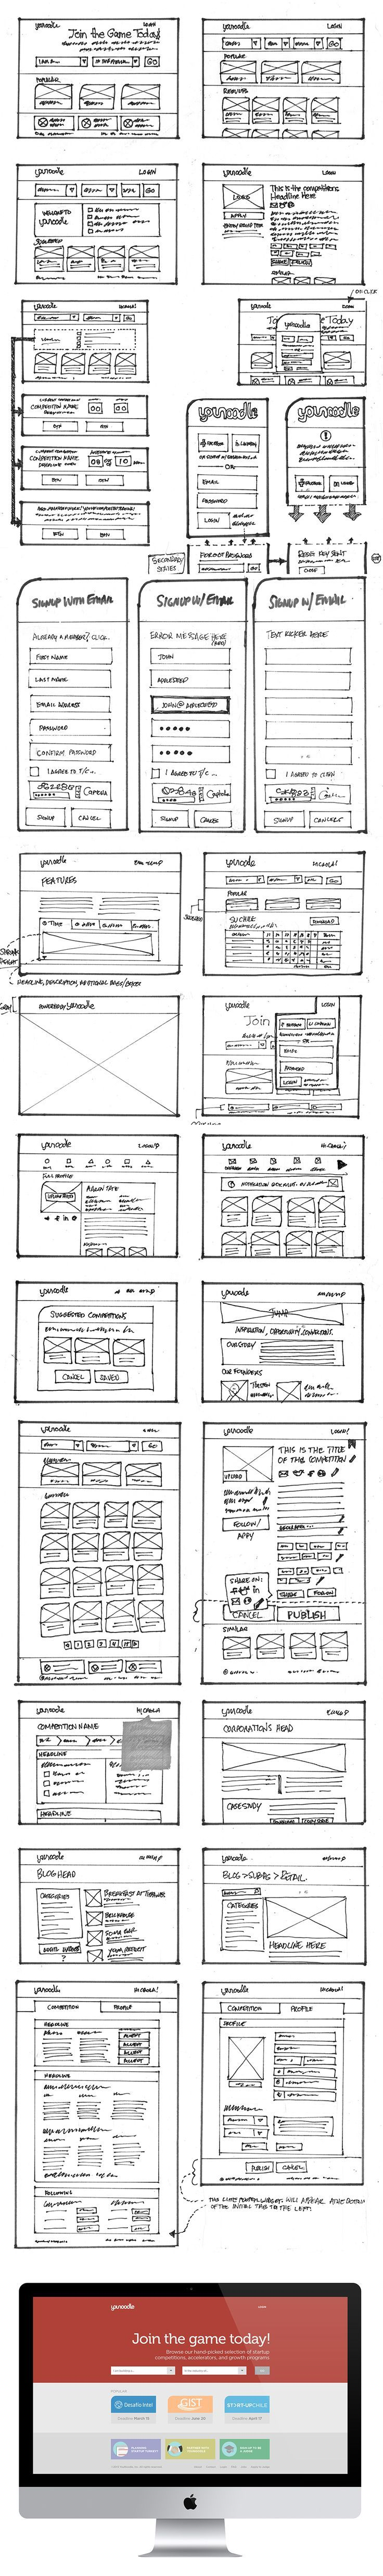 Nearly all of the wireframe sketches for YouNoodle Product merge. UX 07/13. UX. If you like UX, design, or design thinking, check out theuxblog.com podcast https://itunes.apple.com/us/podcast/ux-blog-user-experience-design/id1127946001?mt=2